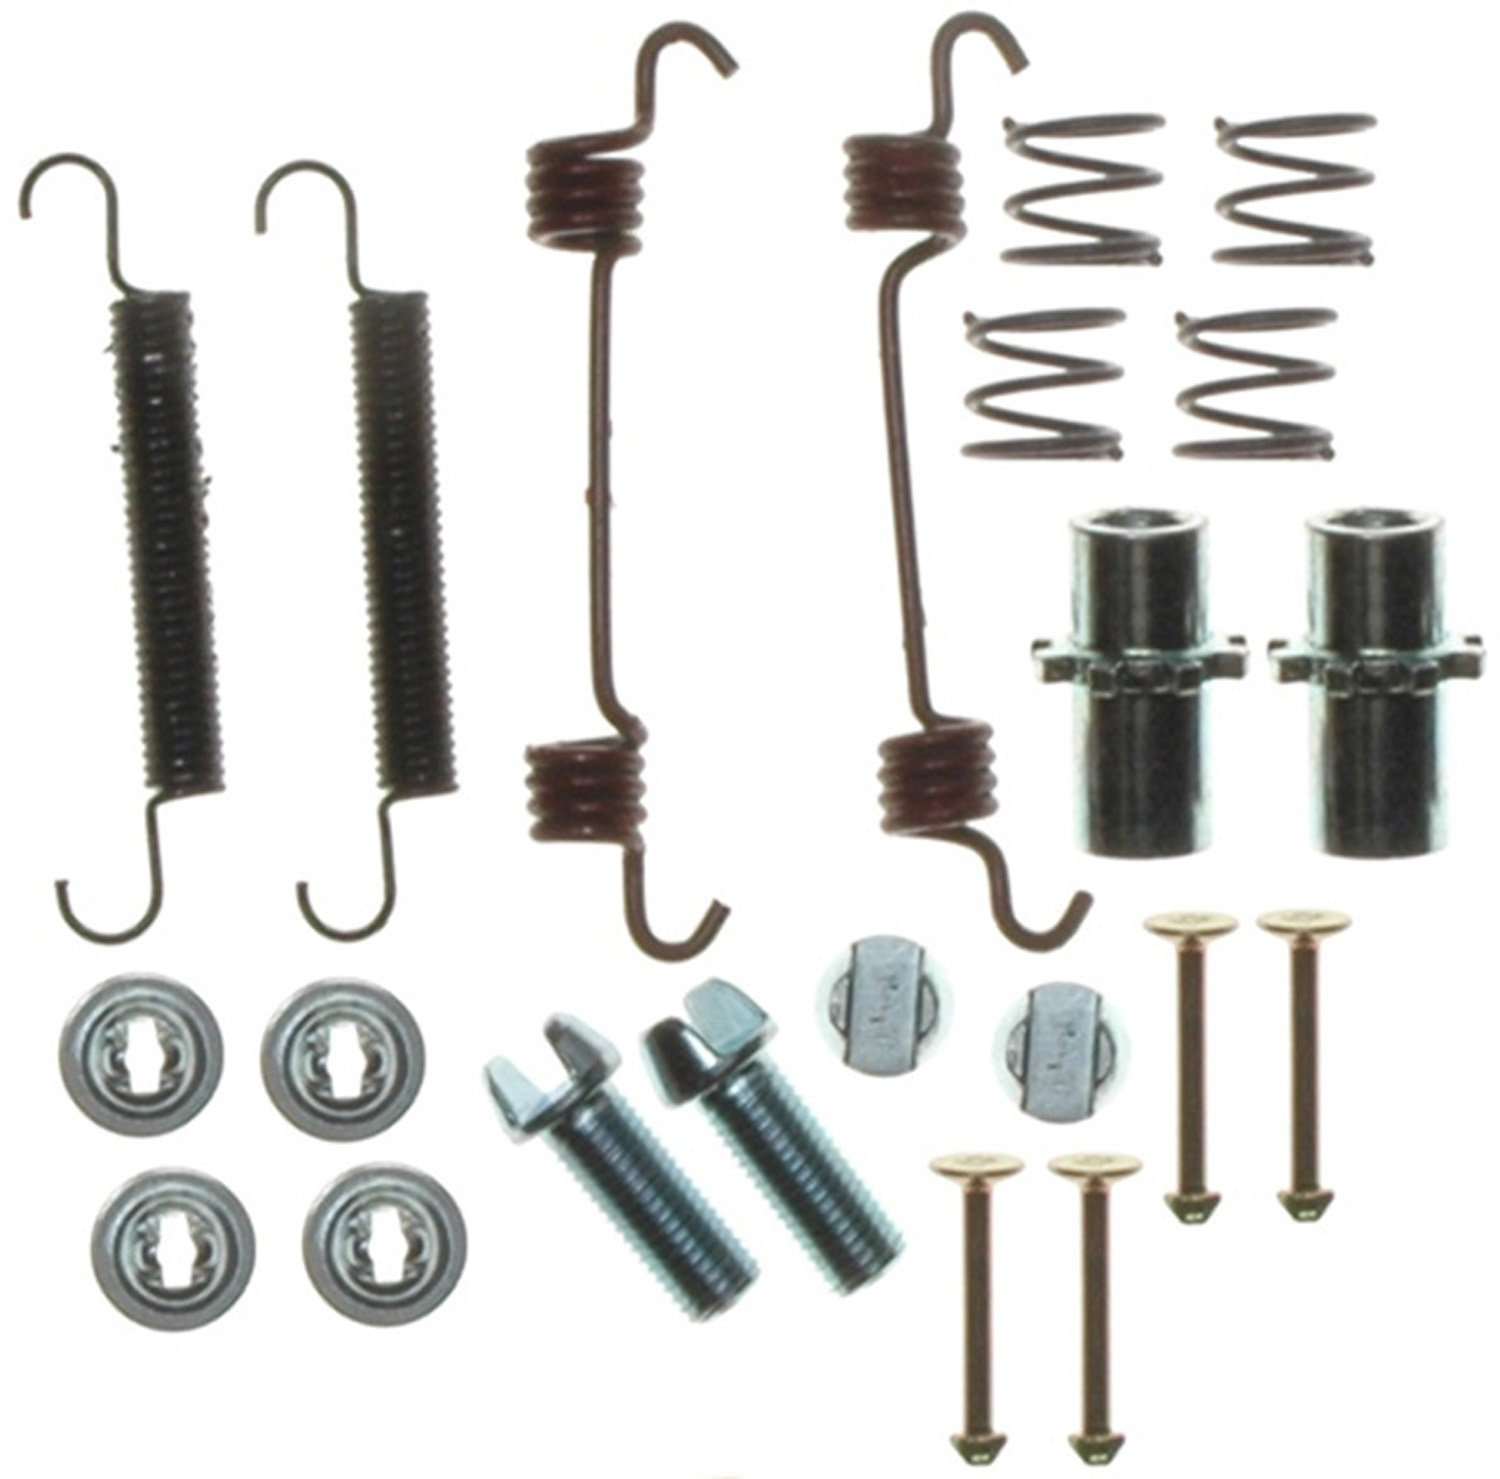 Pins ACDelco 18K1207 Professional Rear Parking Brake Hardware Kit with Springs Adjusters and Retainers